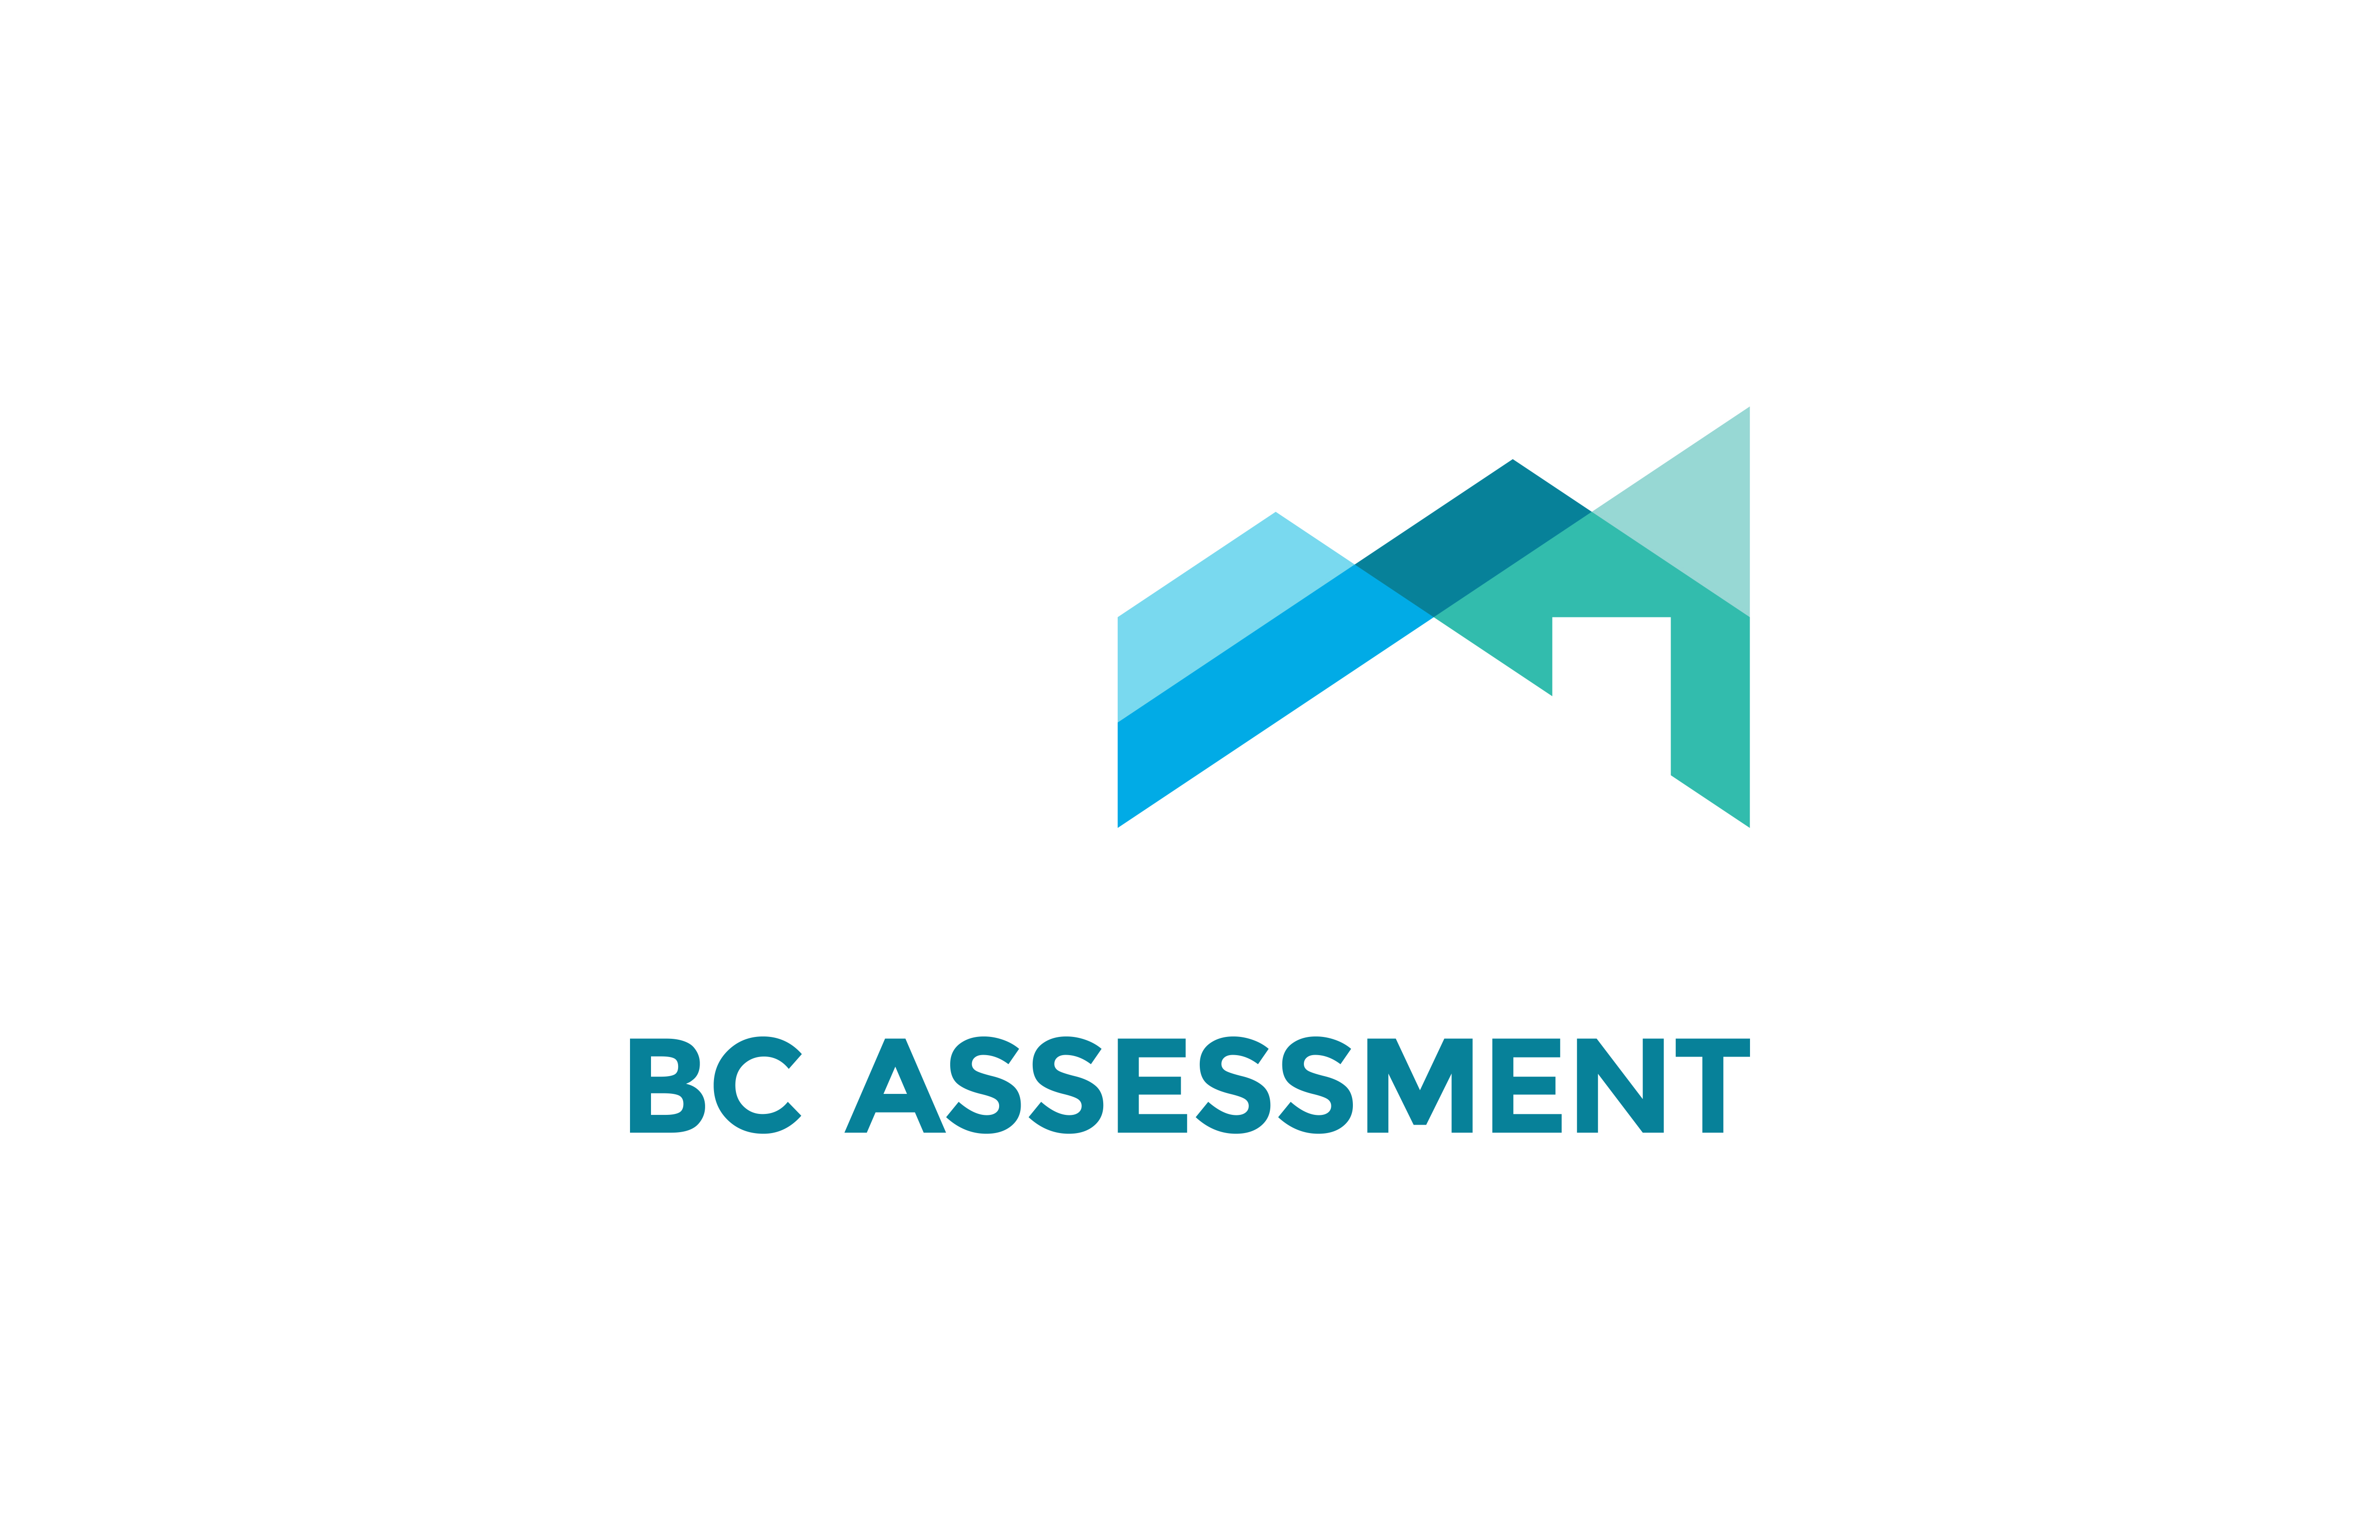 UPDATE: 2020 Property Assessments Will Reflect BC's Moderating Real Estate Markets